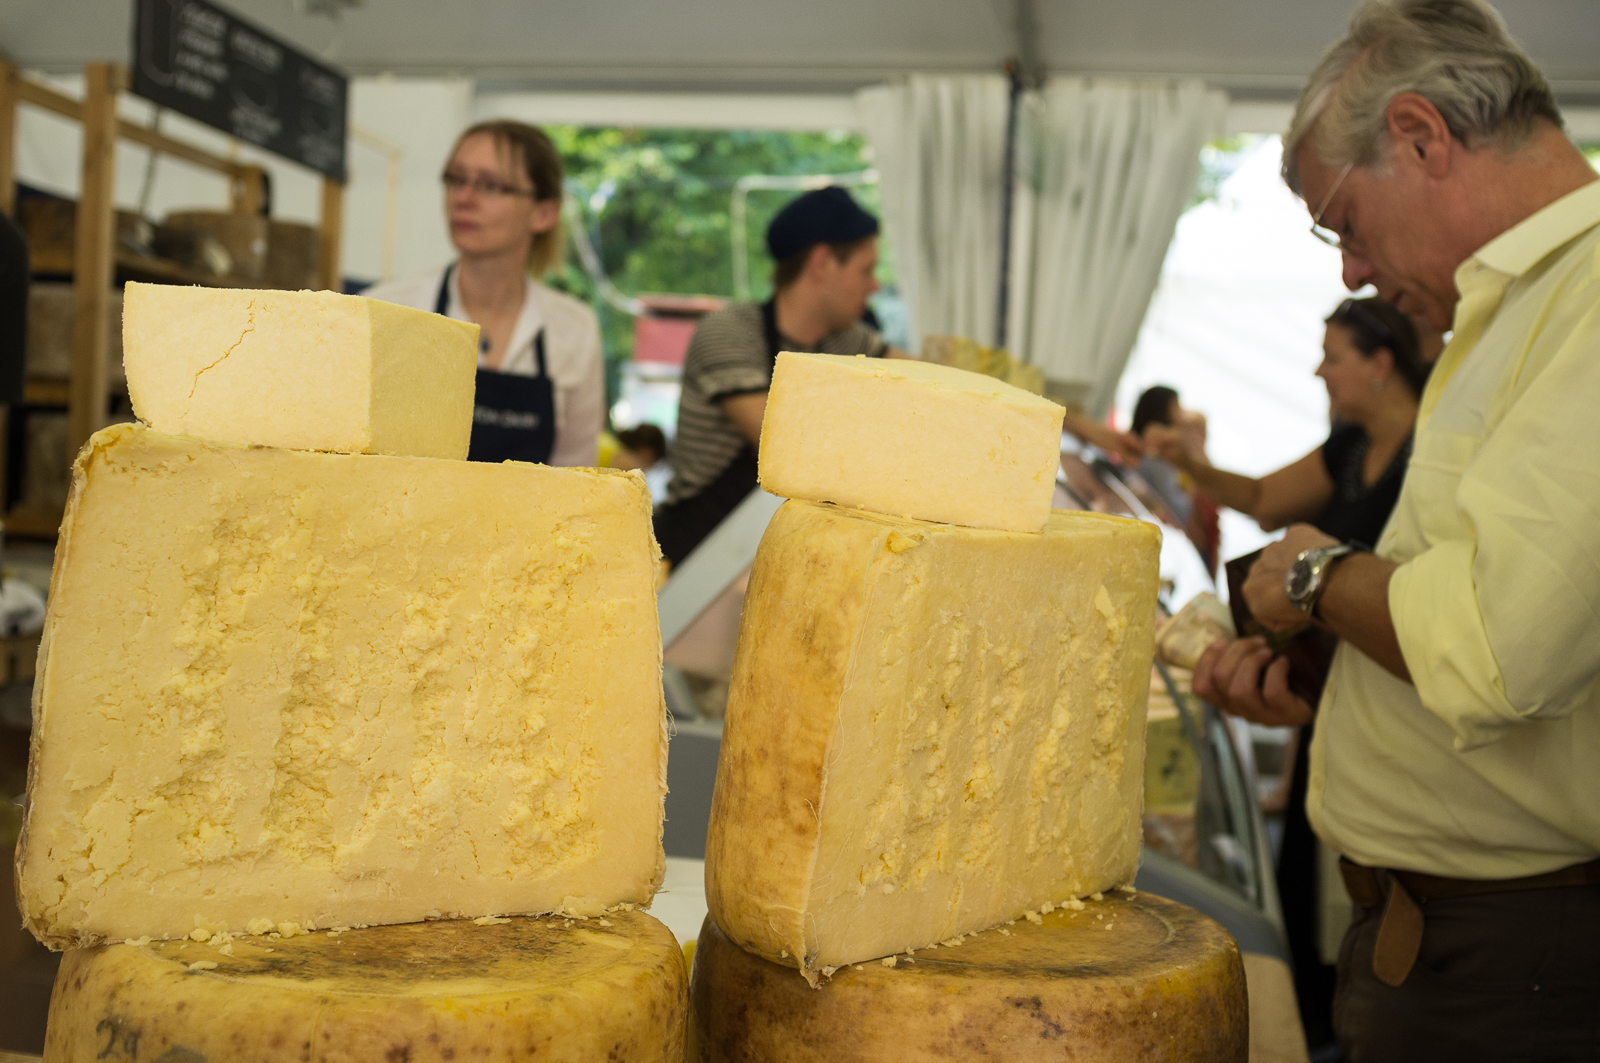 Cheese festival (2011) in Bra (Piedmont)